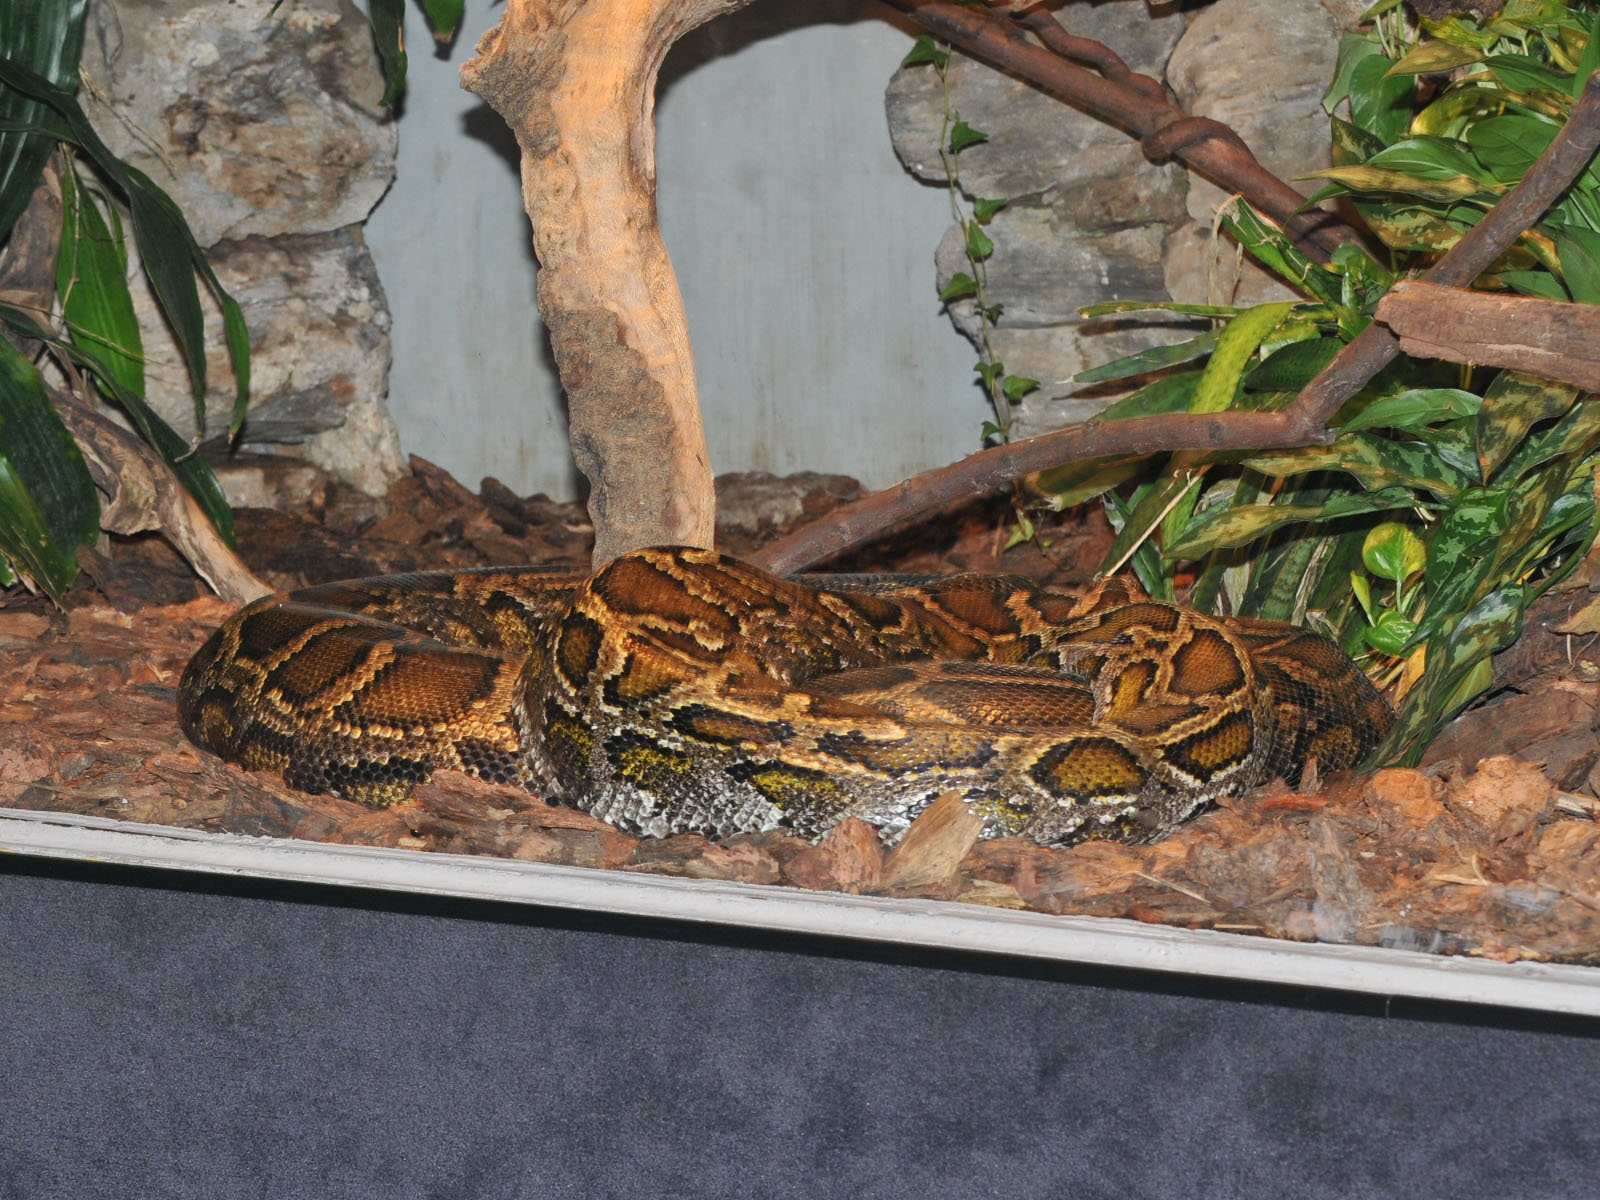 Baby Reticulated Python Reticulated python